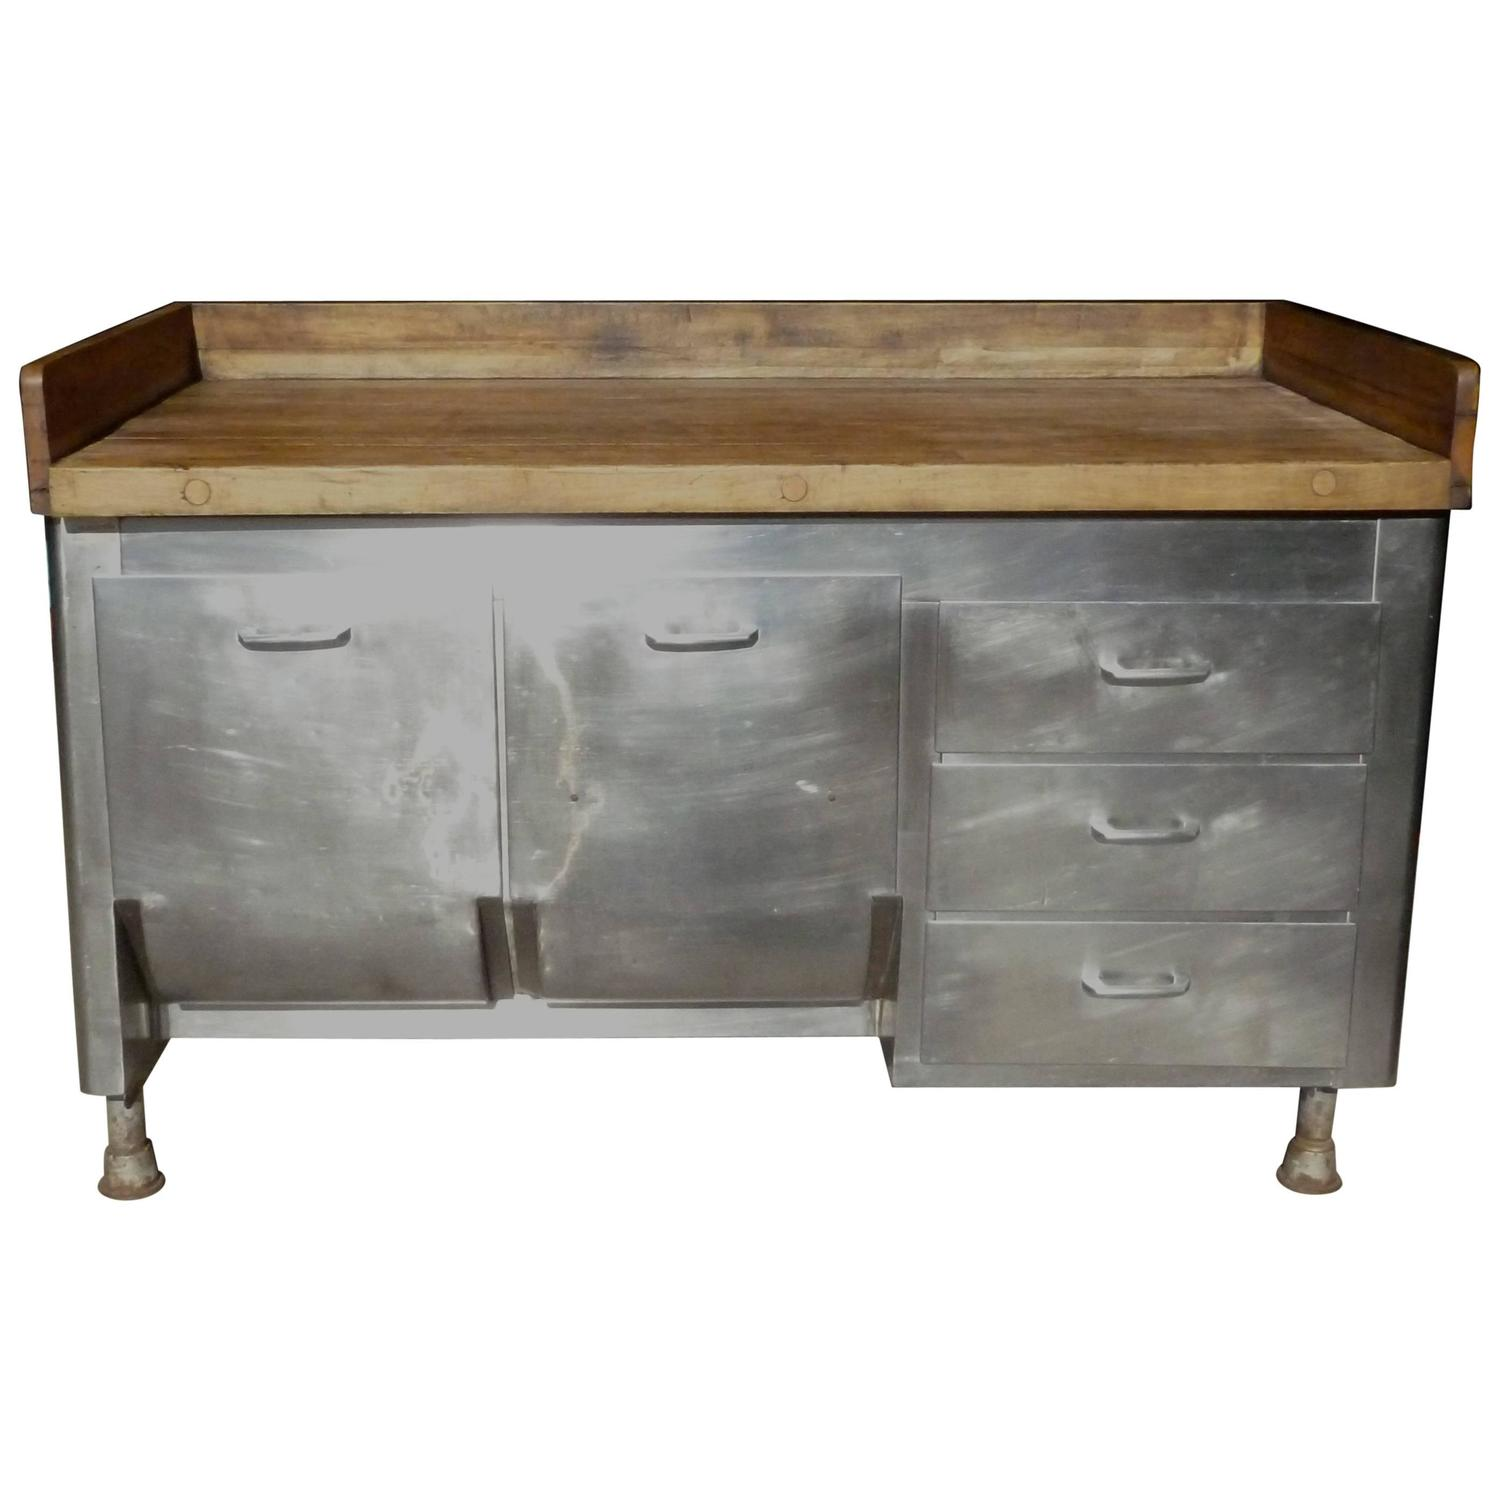 Butcher Block Steel Commercial Kitchen 1930s Baking Island Cabinet At 1stdibs